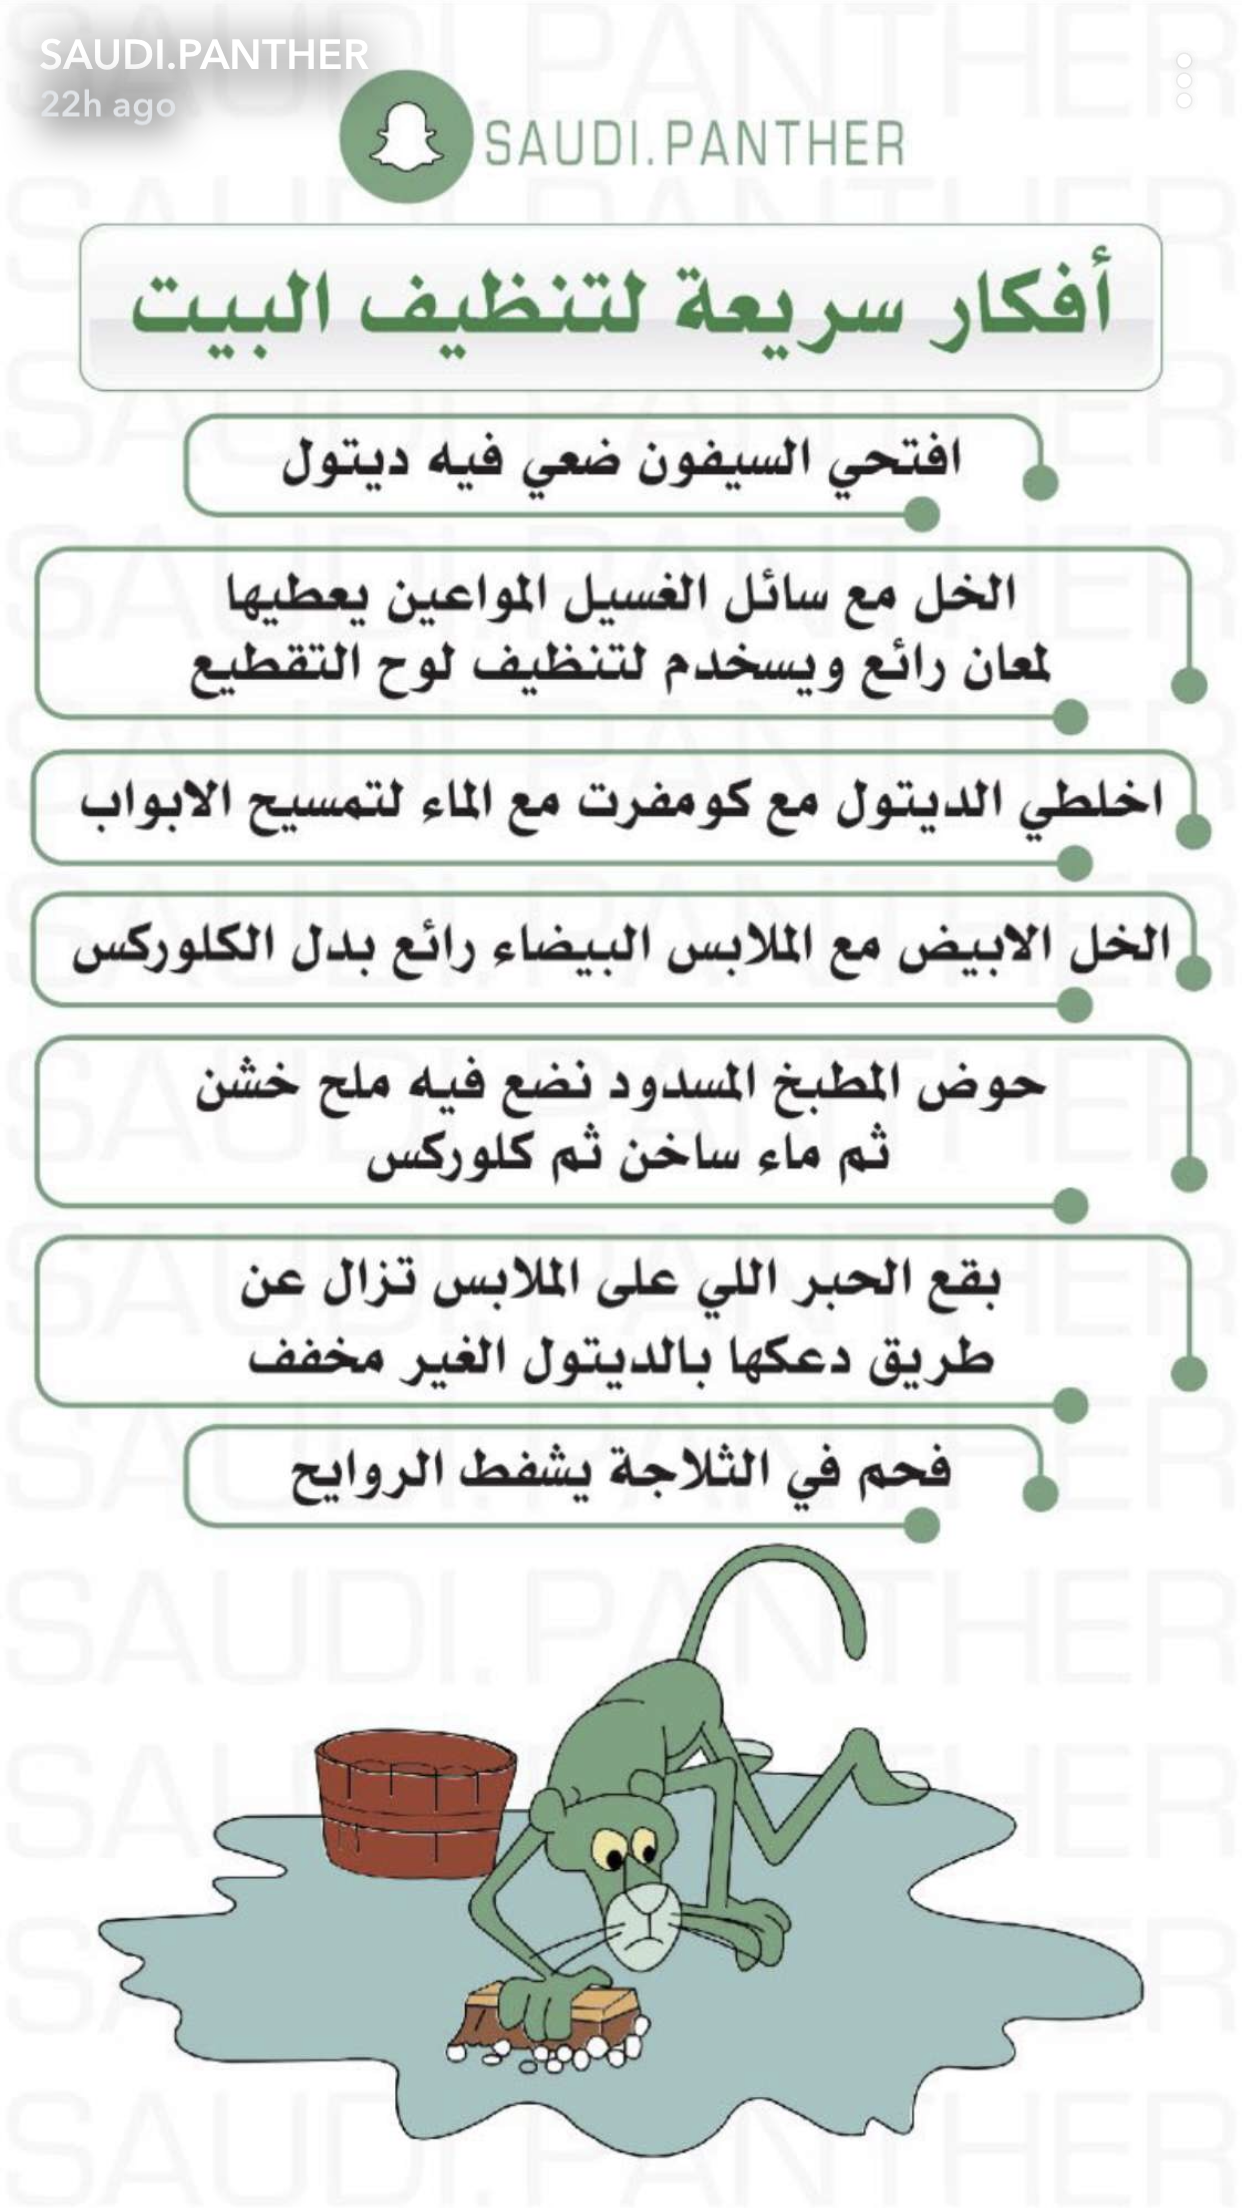 Pin By Saida Yusef On S P House Cleaning Checklist Clean House House Cleaning Tips